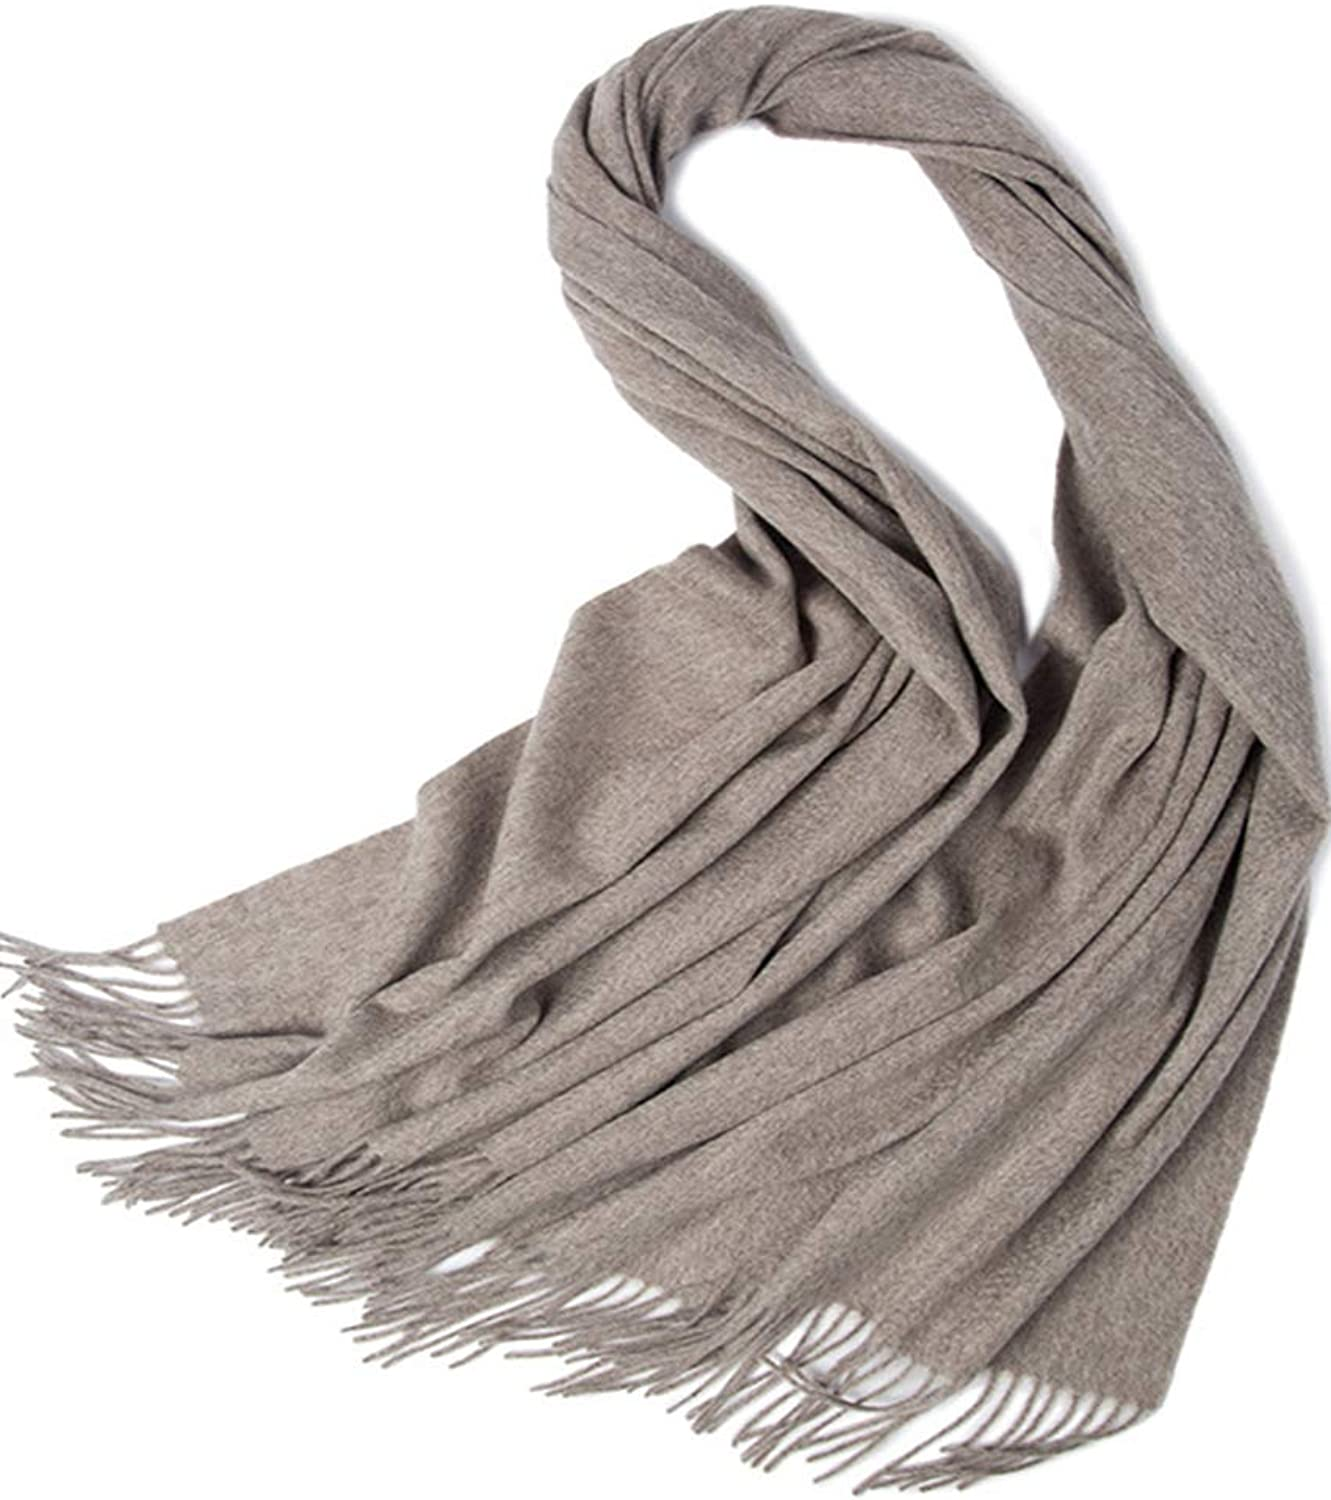 Helan Women's Pure Lambswool Long Scarf Oversized Shawl Long Shawl Wraps Solid color 200cm X 70cm Porpoise